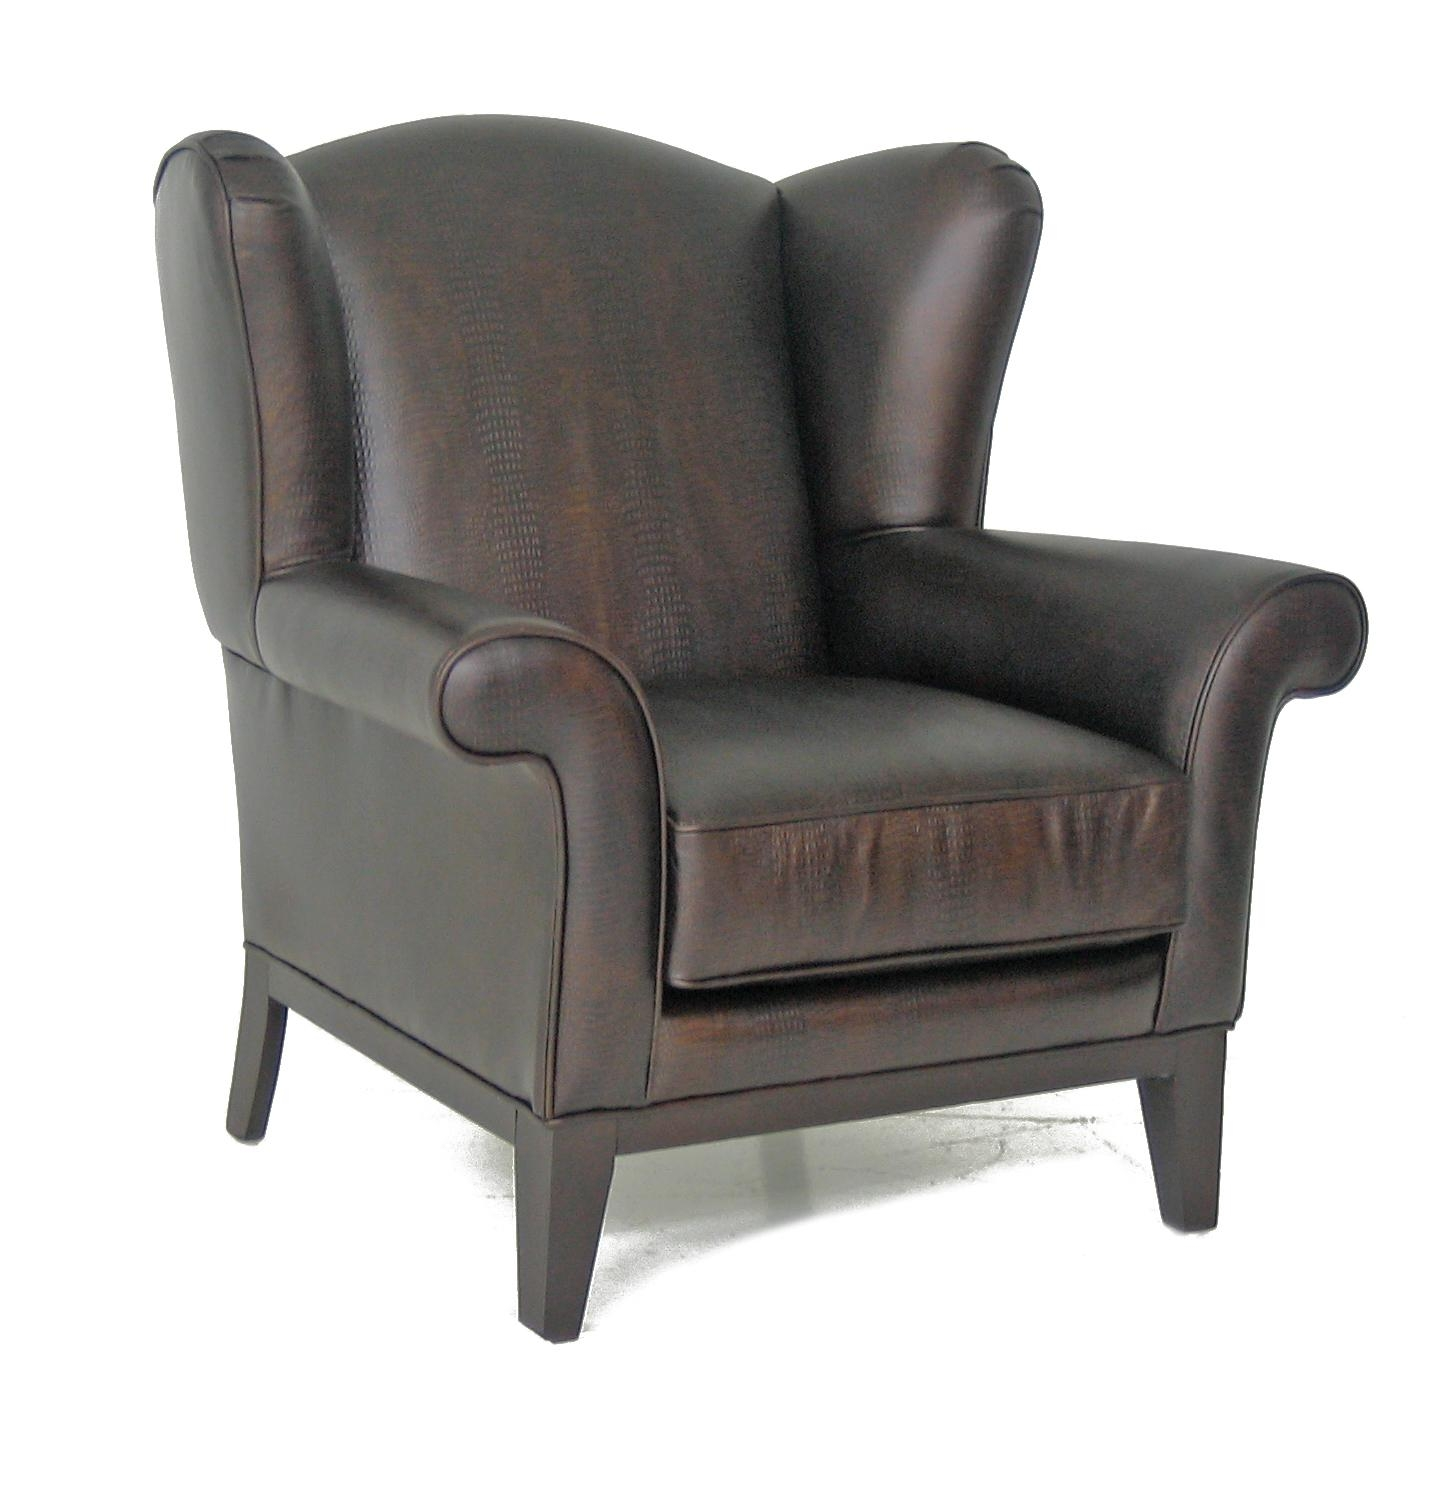 Leather Wingback Chair | Home Designlarizza For Chair Sofas (Image 15 of 22)